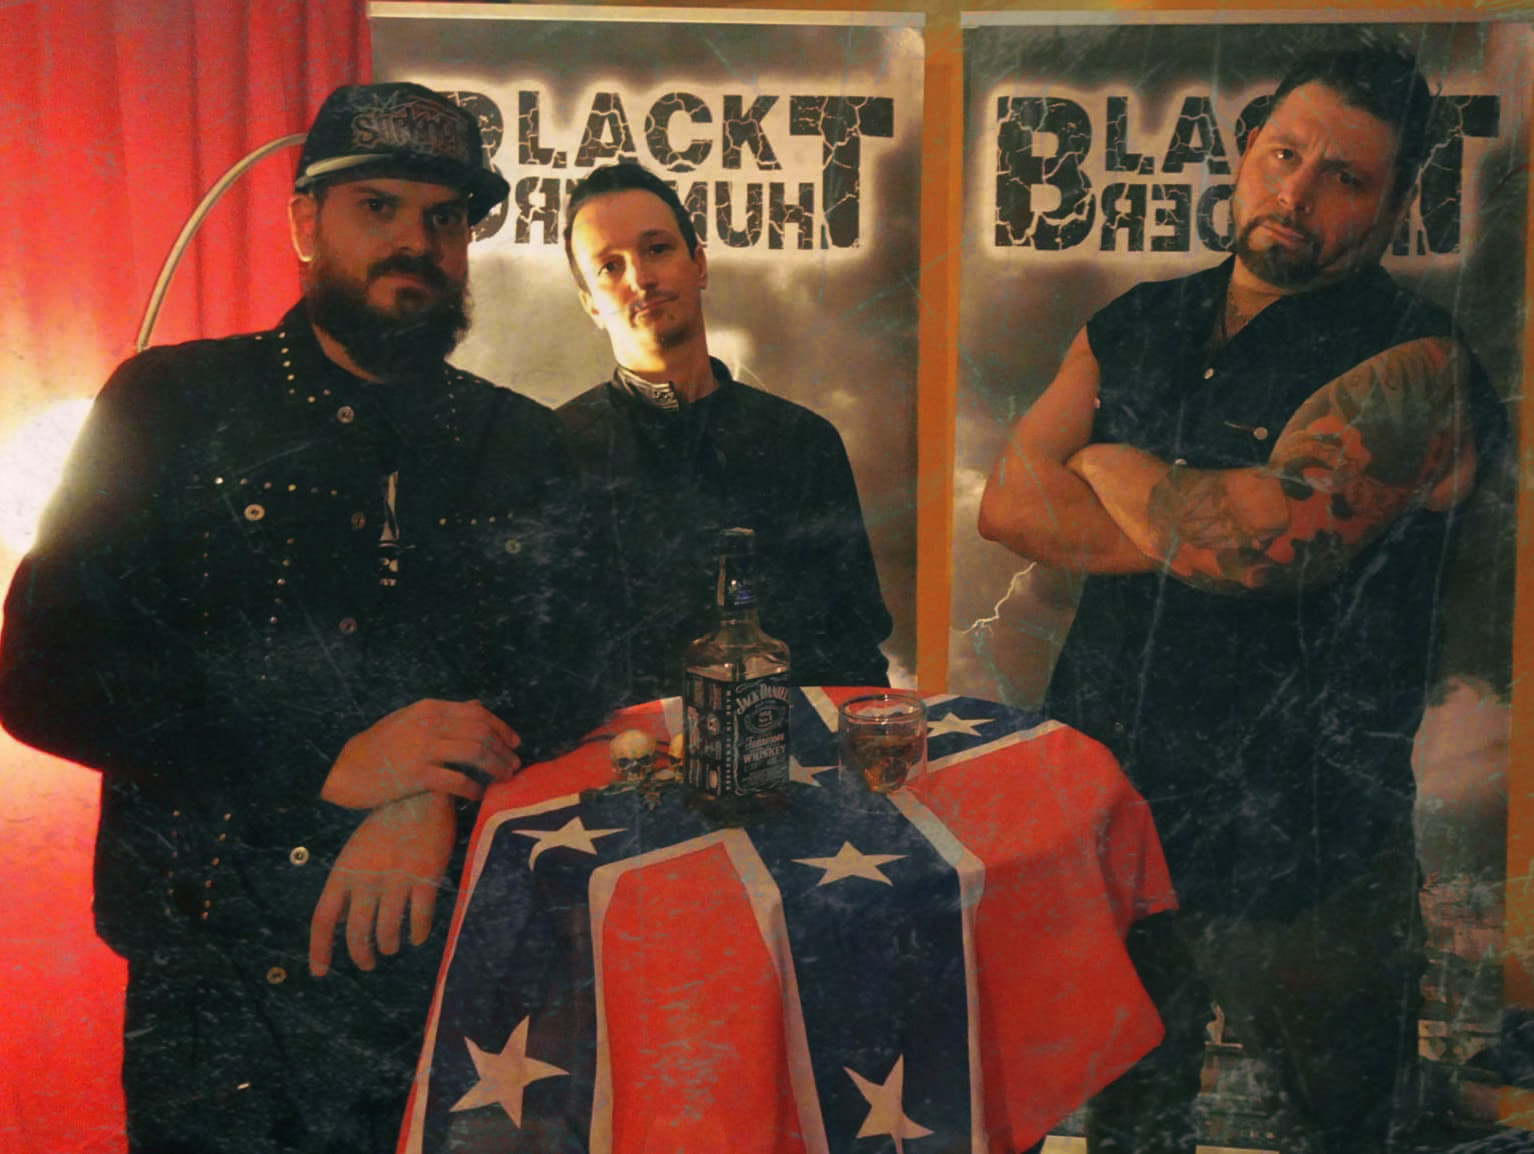 Black Thunder - pic 1